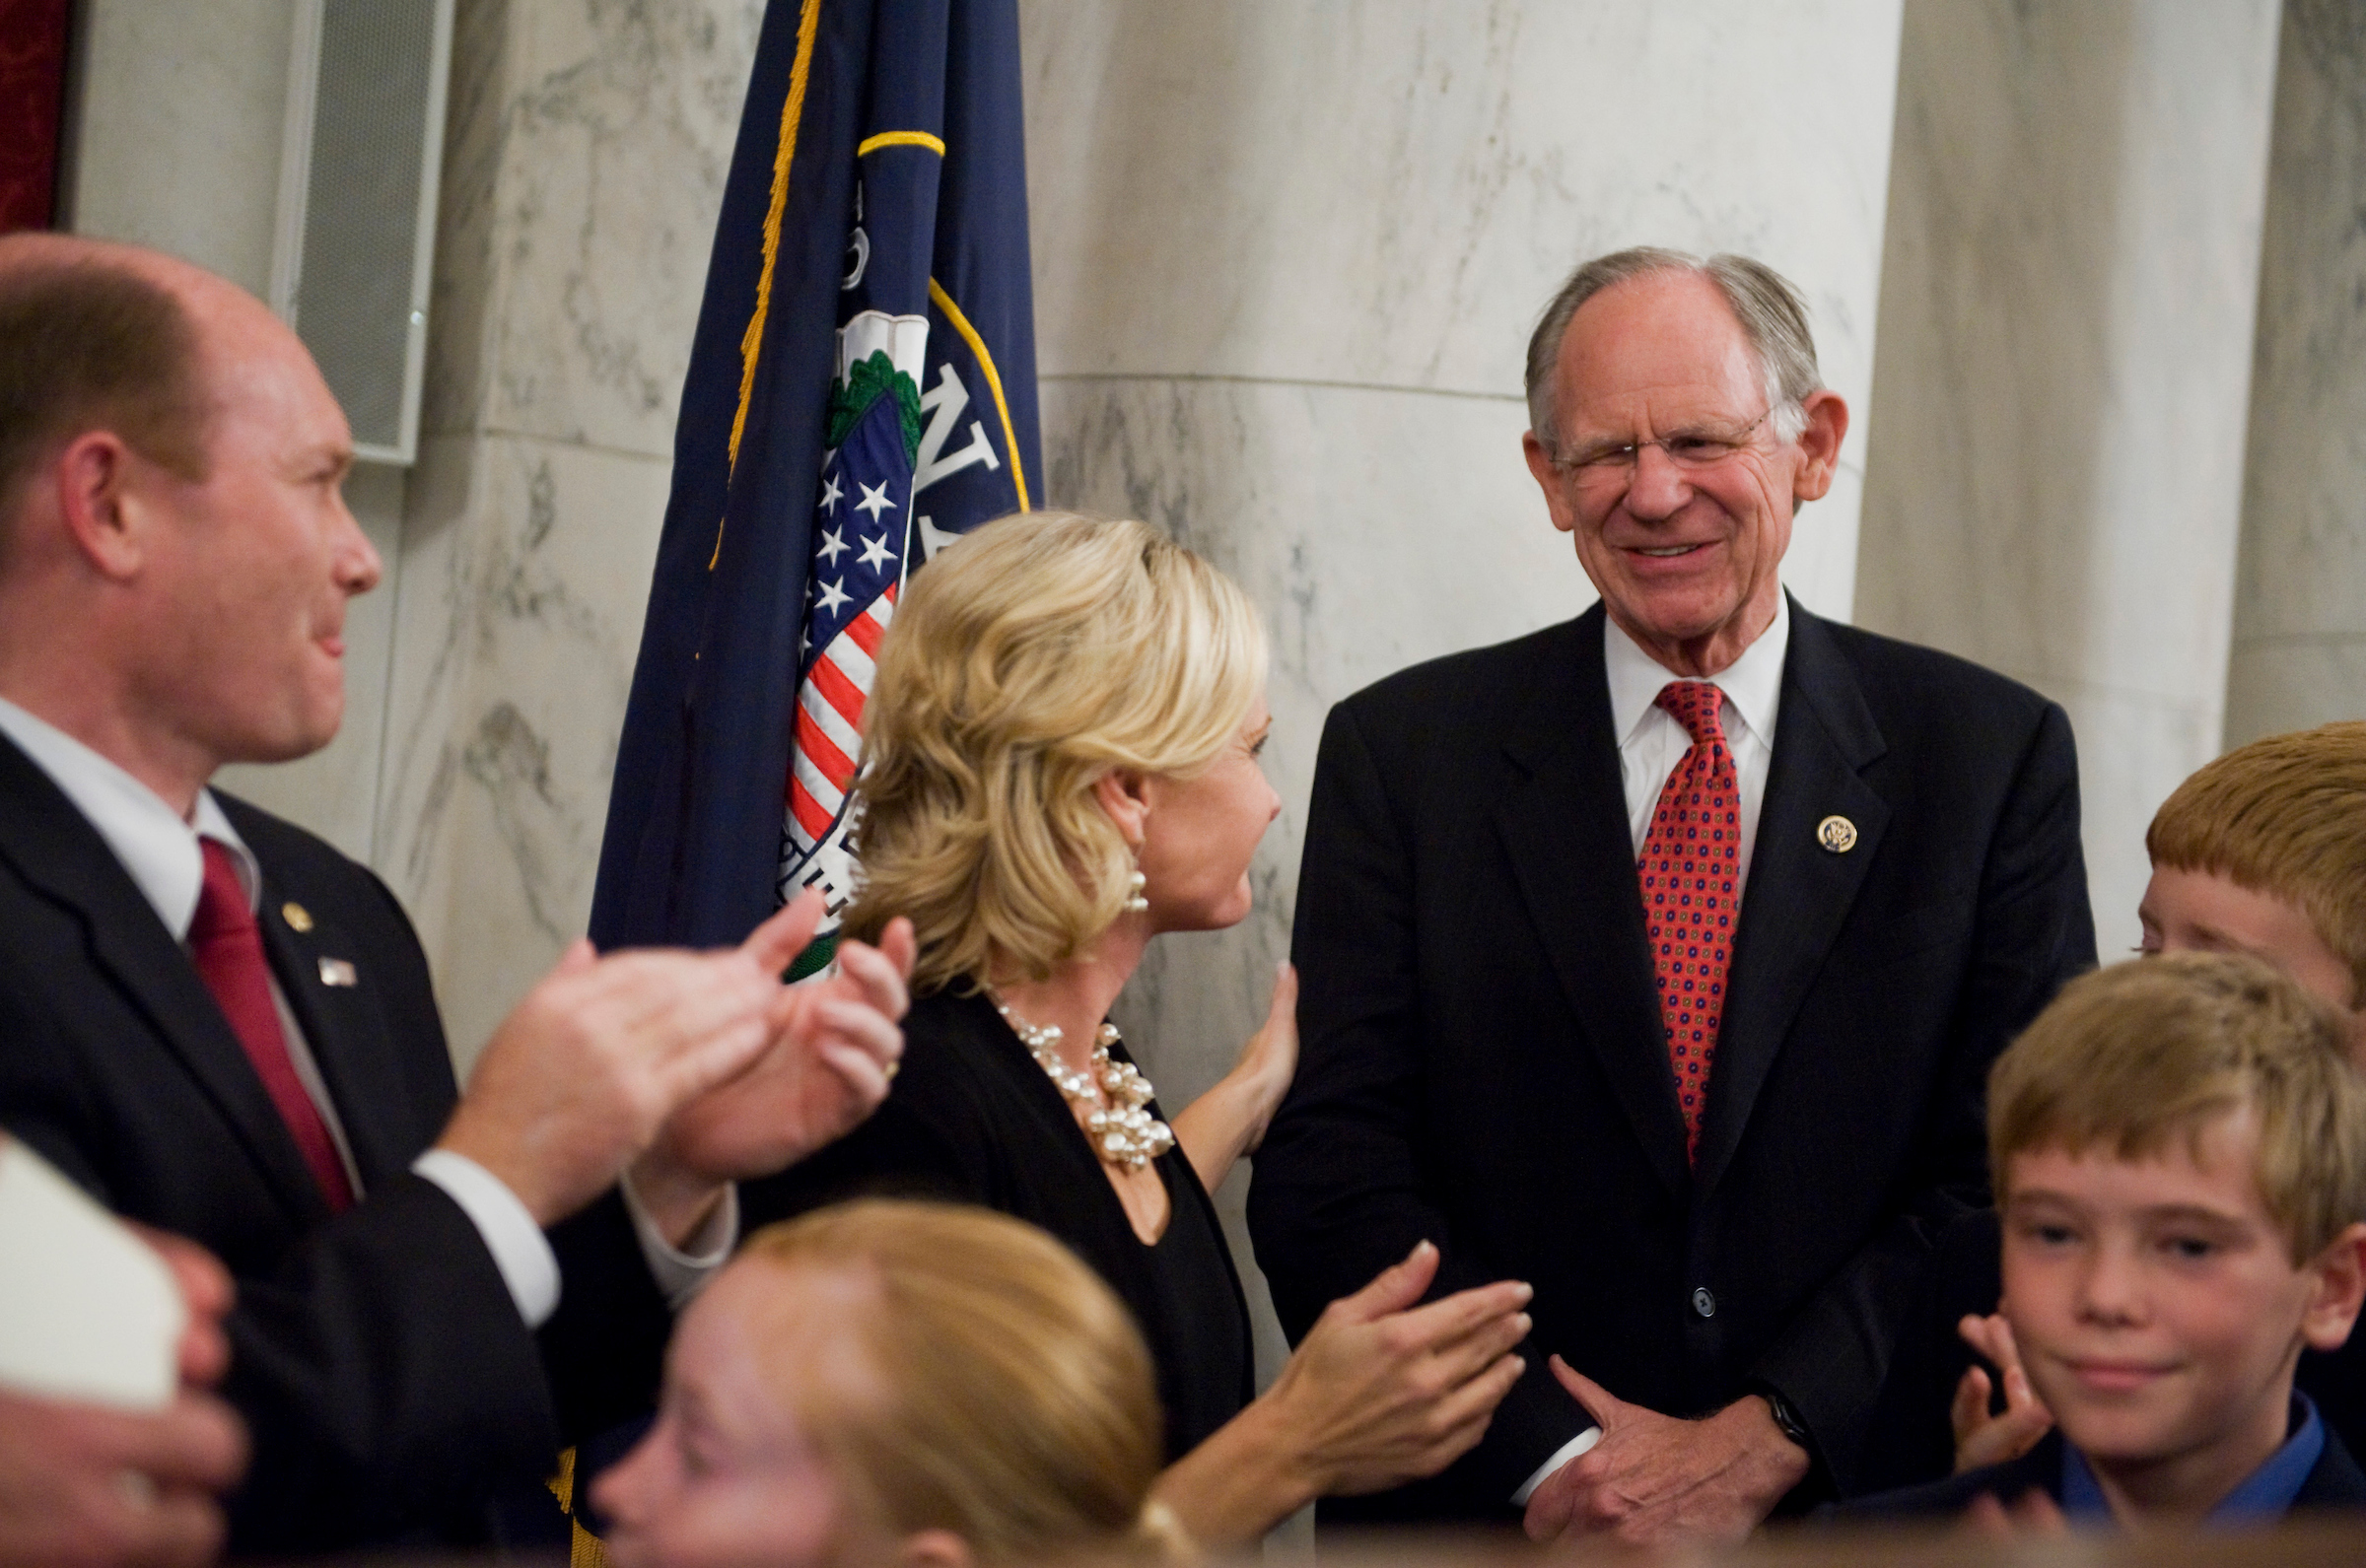 UNITED STATES - NOVEMBER 15: Rep, Mike Castle, R-Del., is recognized by Sen. Chris Coons, D-Del., and his wife Annie at reception in Coons' honor in Russell Building. (Photo By Tom Williams/Roll Call)